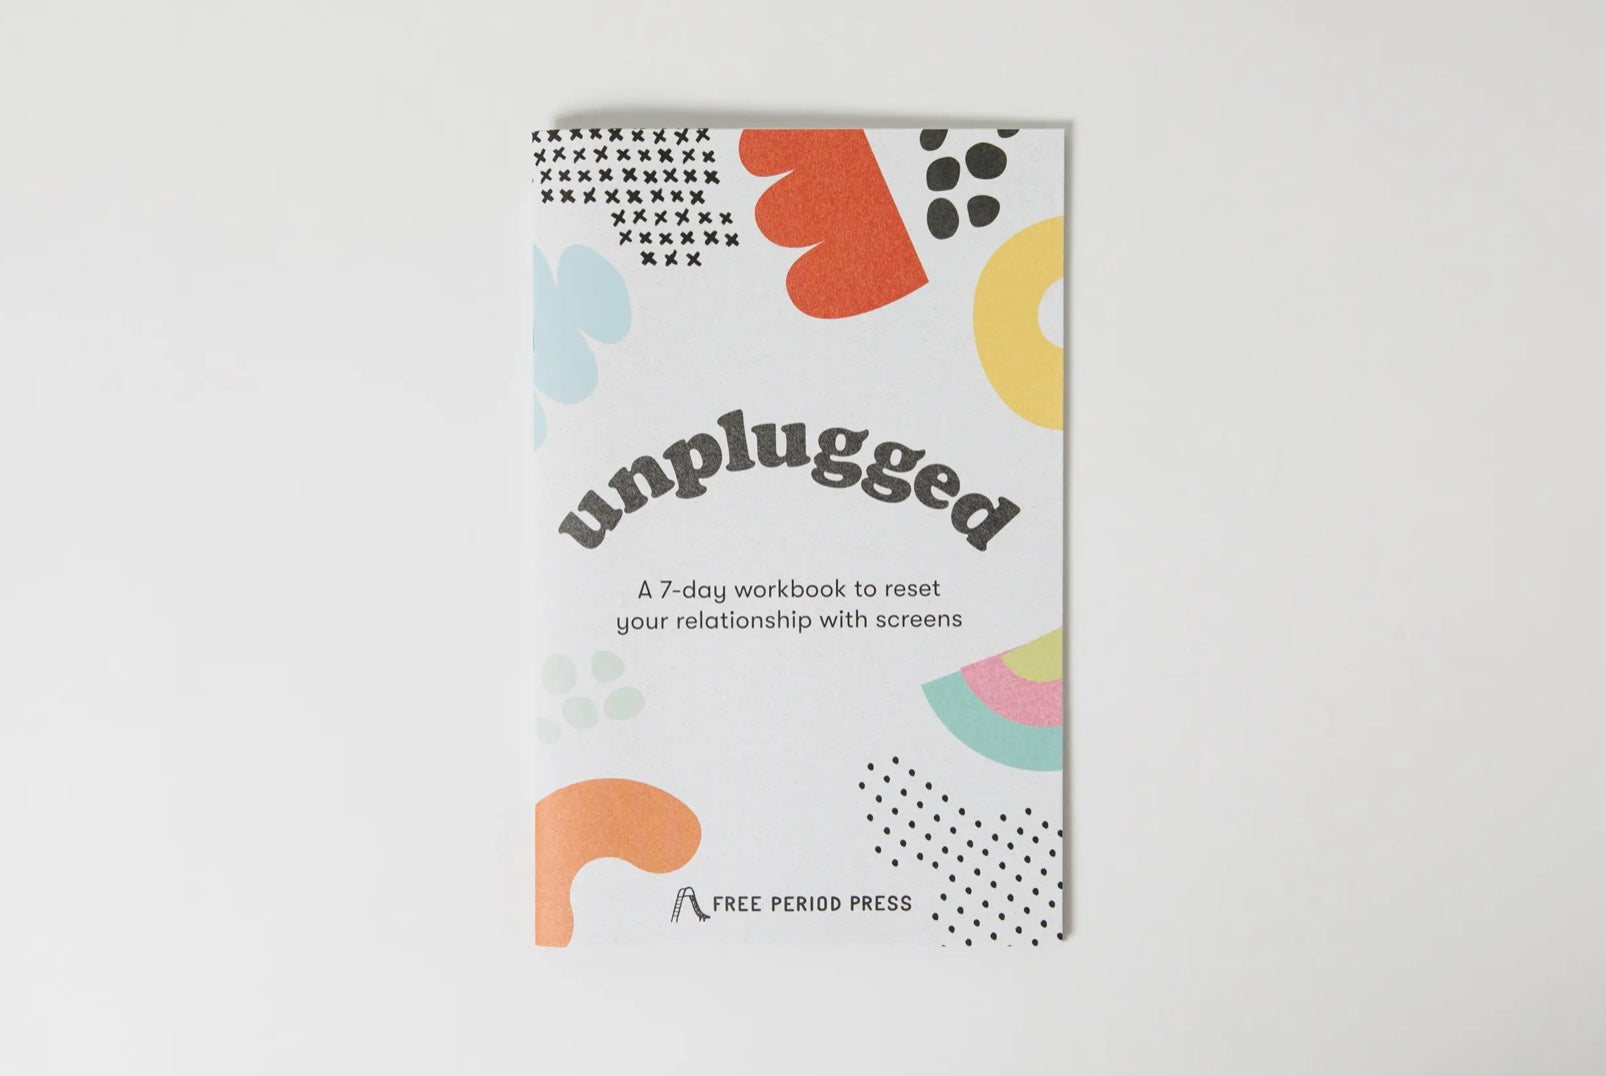 Unplugged - A 7-day workbook to reset your relationships with screens